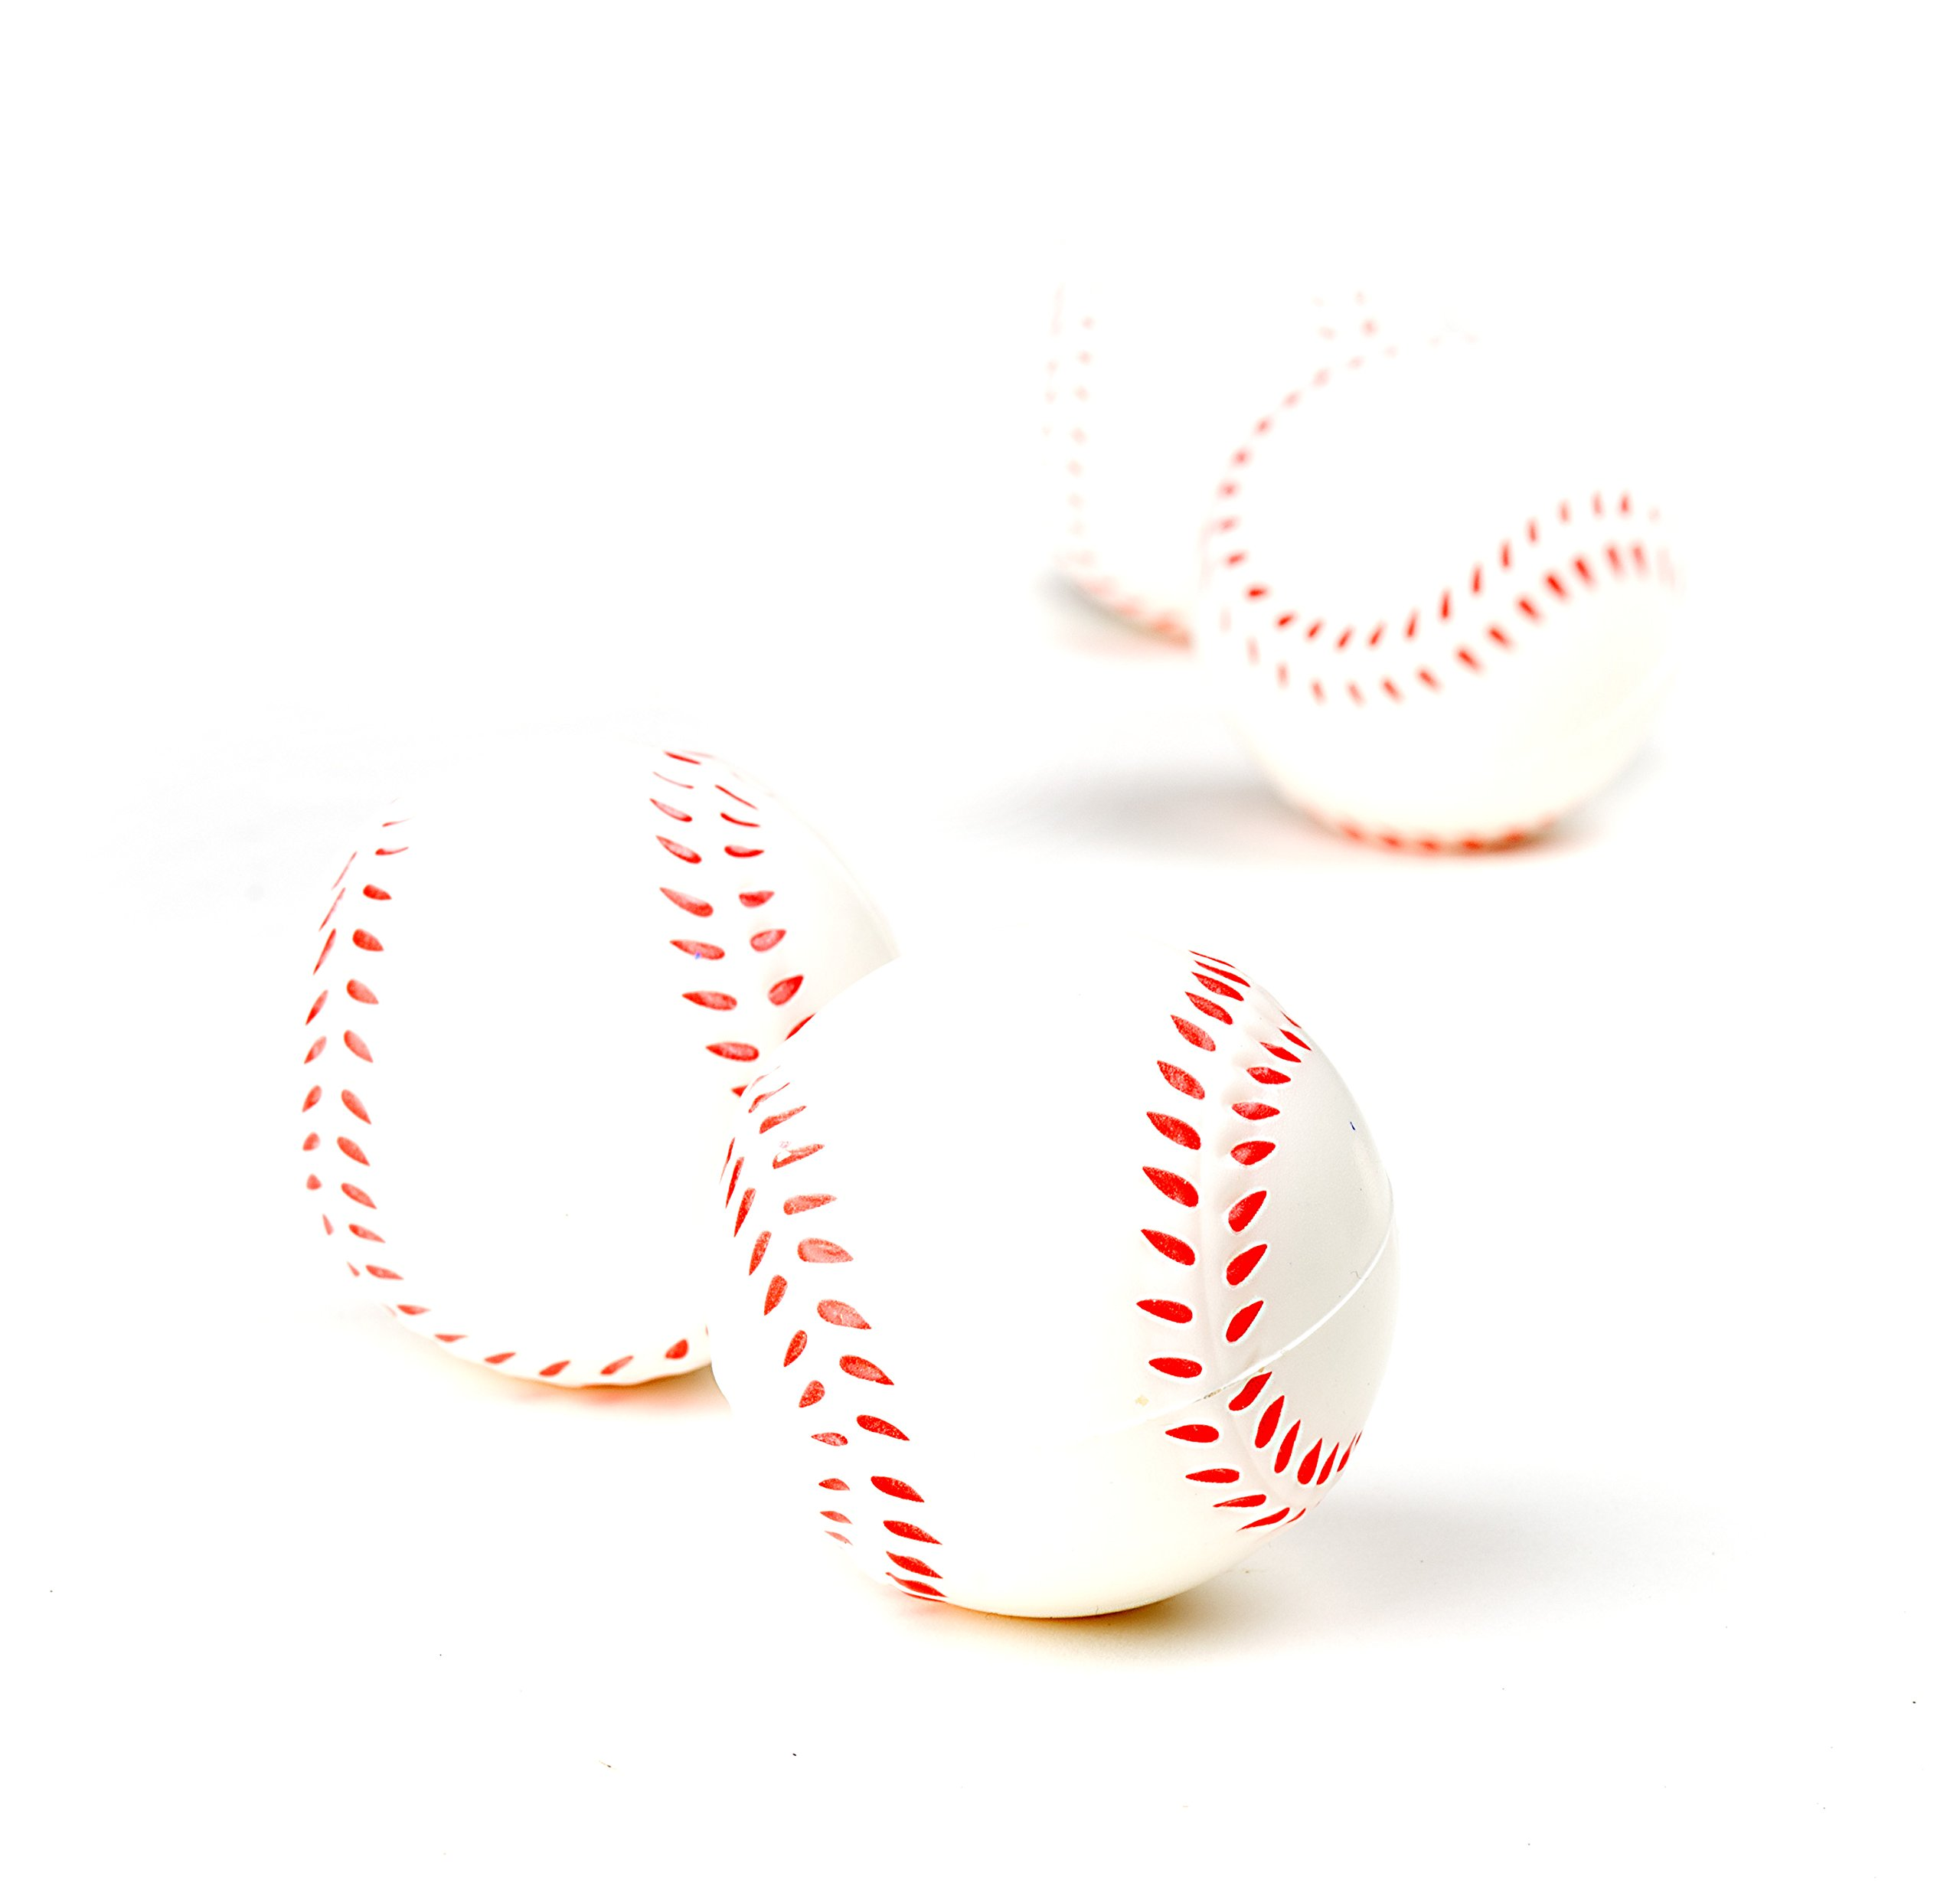 Baseball Sports Themed 2.5-Inch Foam Squeeze Balls for Stress Relief, Relaxable Realistic Baseball Sport Balls - Bulk 1 Dozen by Neliblu (Image #4)